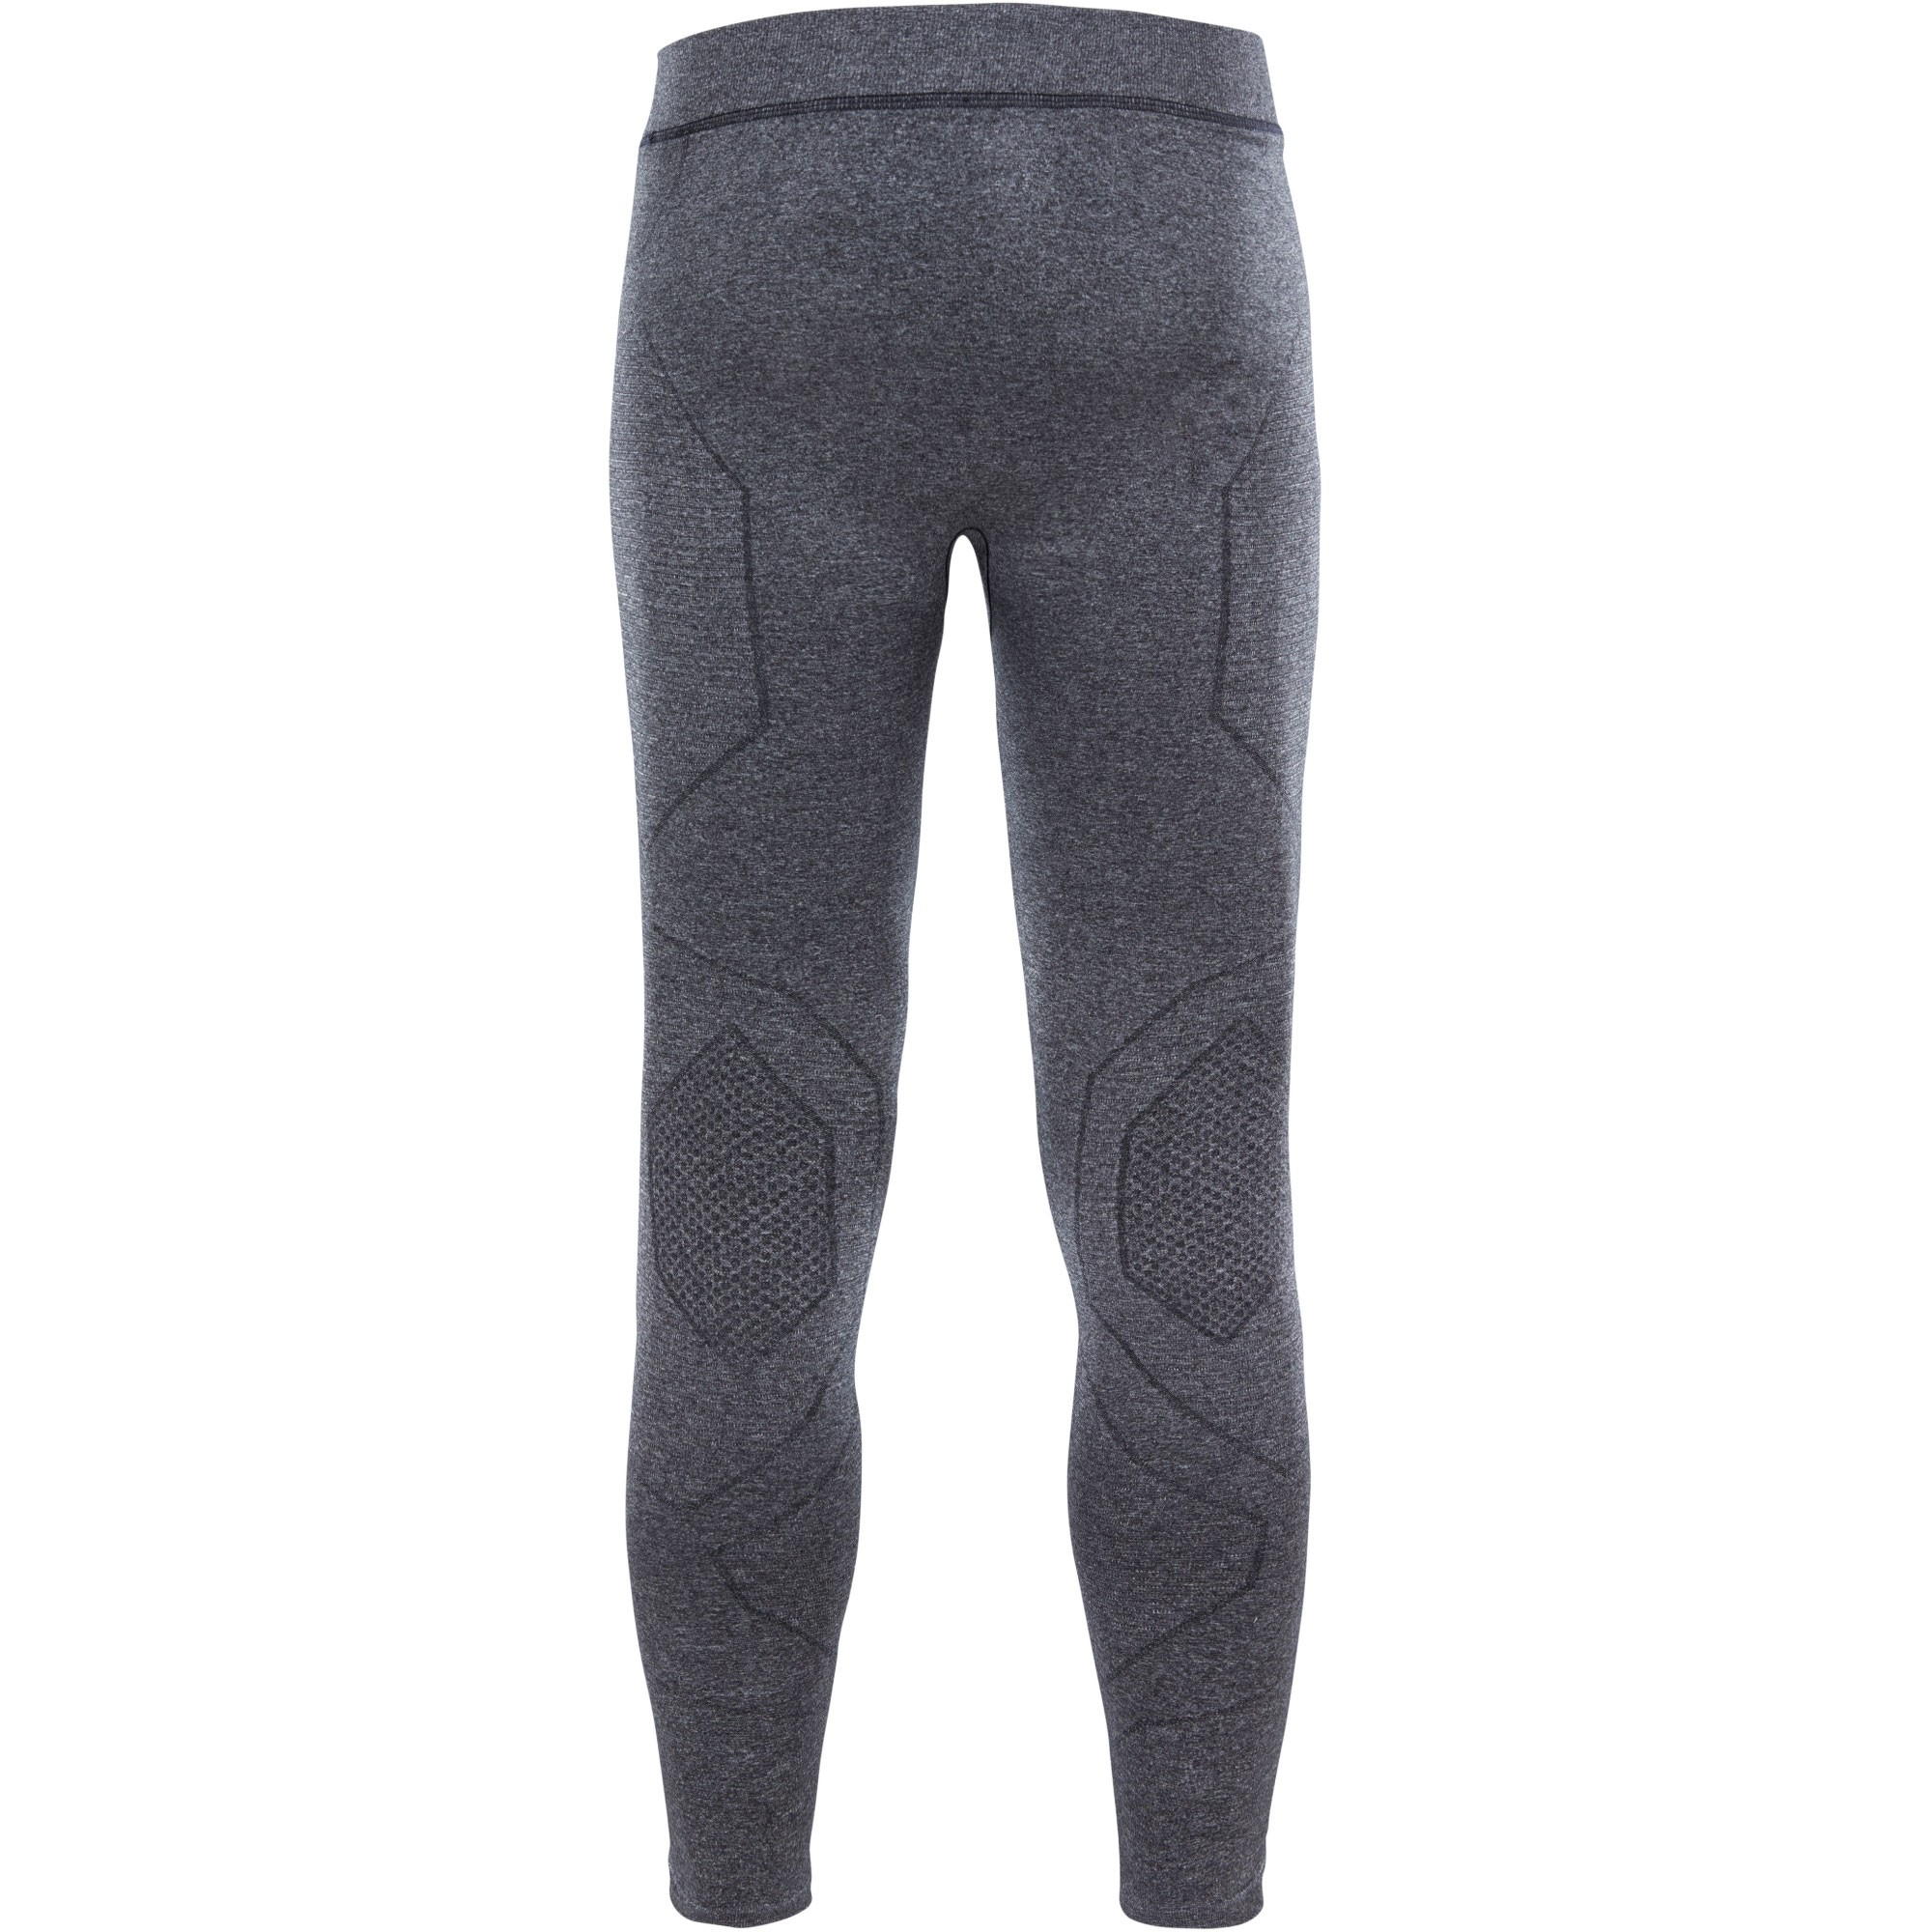 The-North-Face-Mens-Summit-L1-Pant-TNF-Black-Heather-1-W17